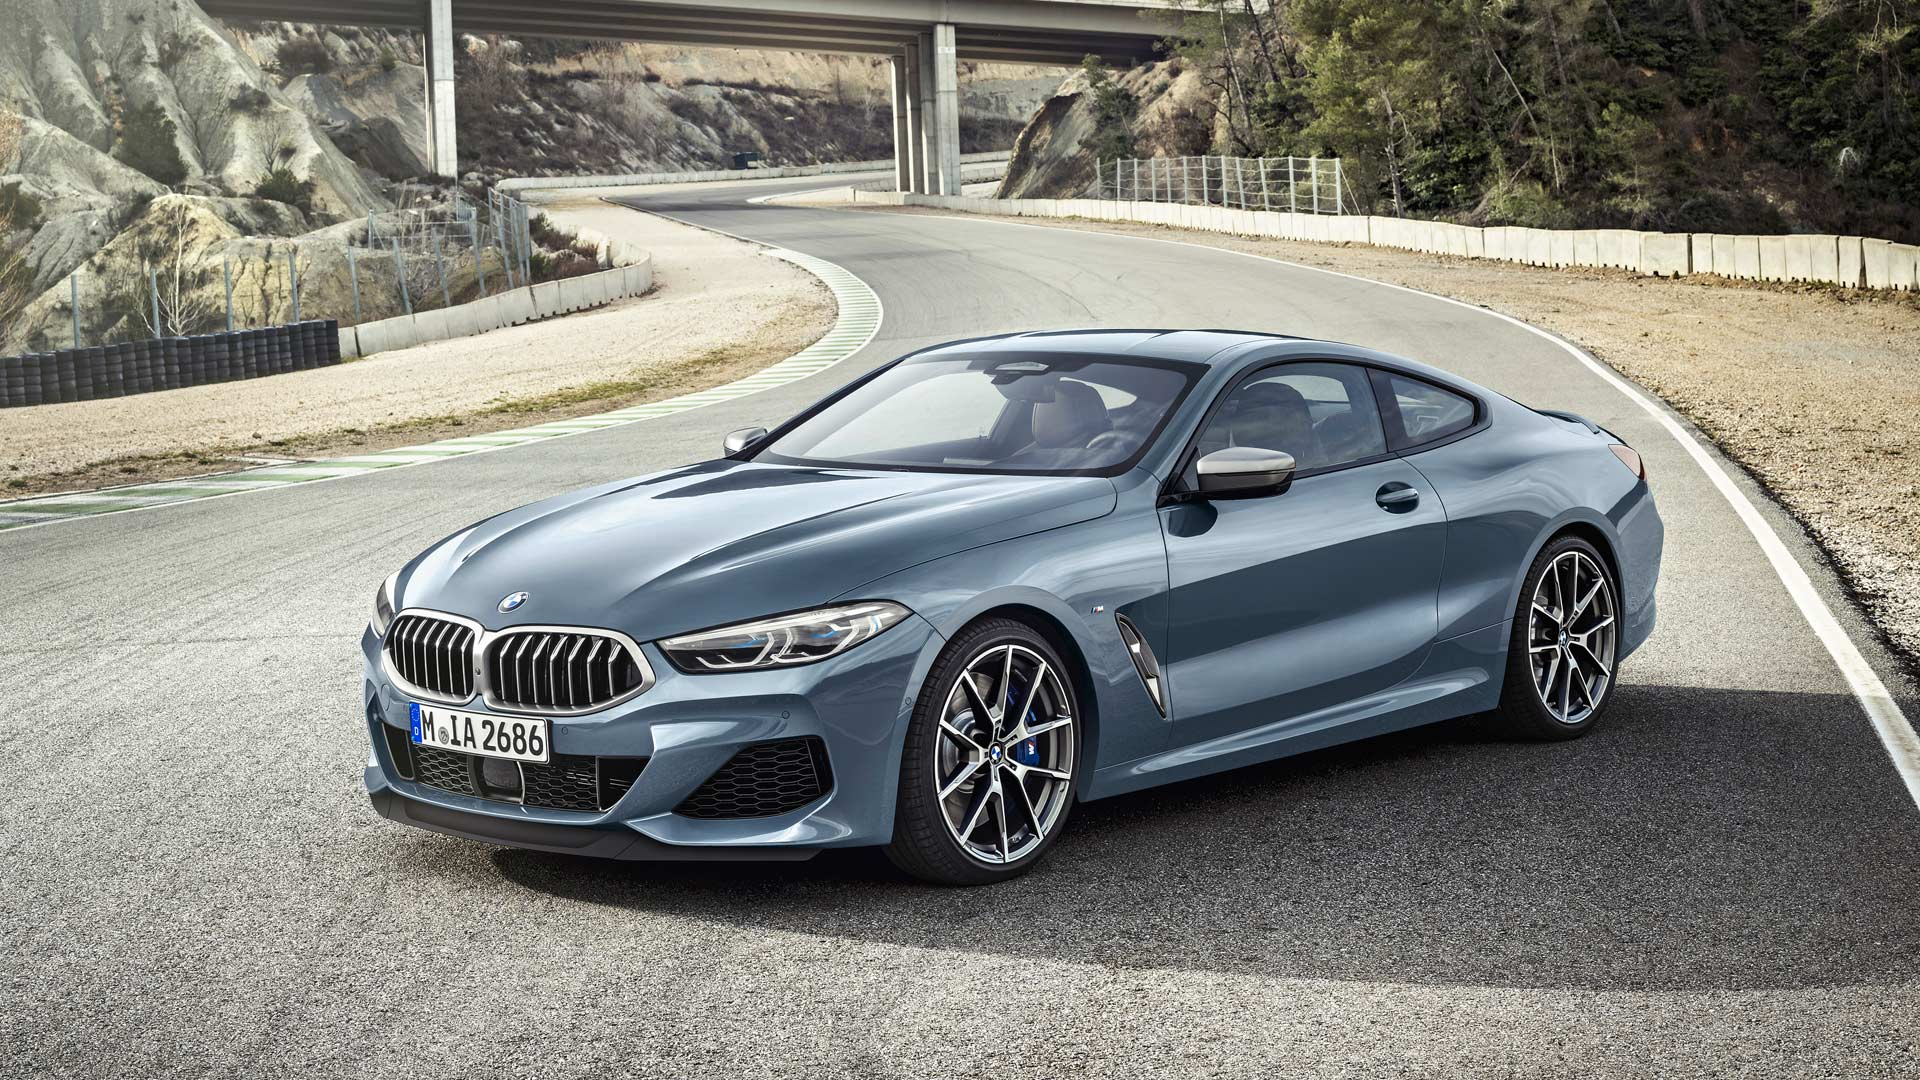 Bmw M8 Le Mans >> 2019 BMW 8 Series Coupe debuts with 530 hp V8 - Autodevot